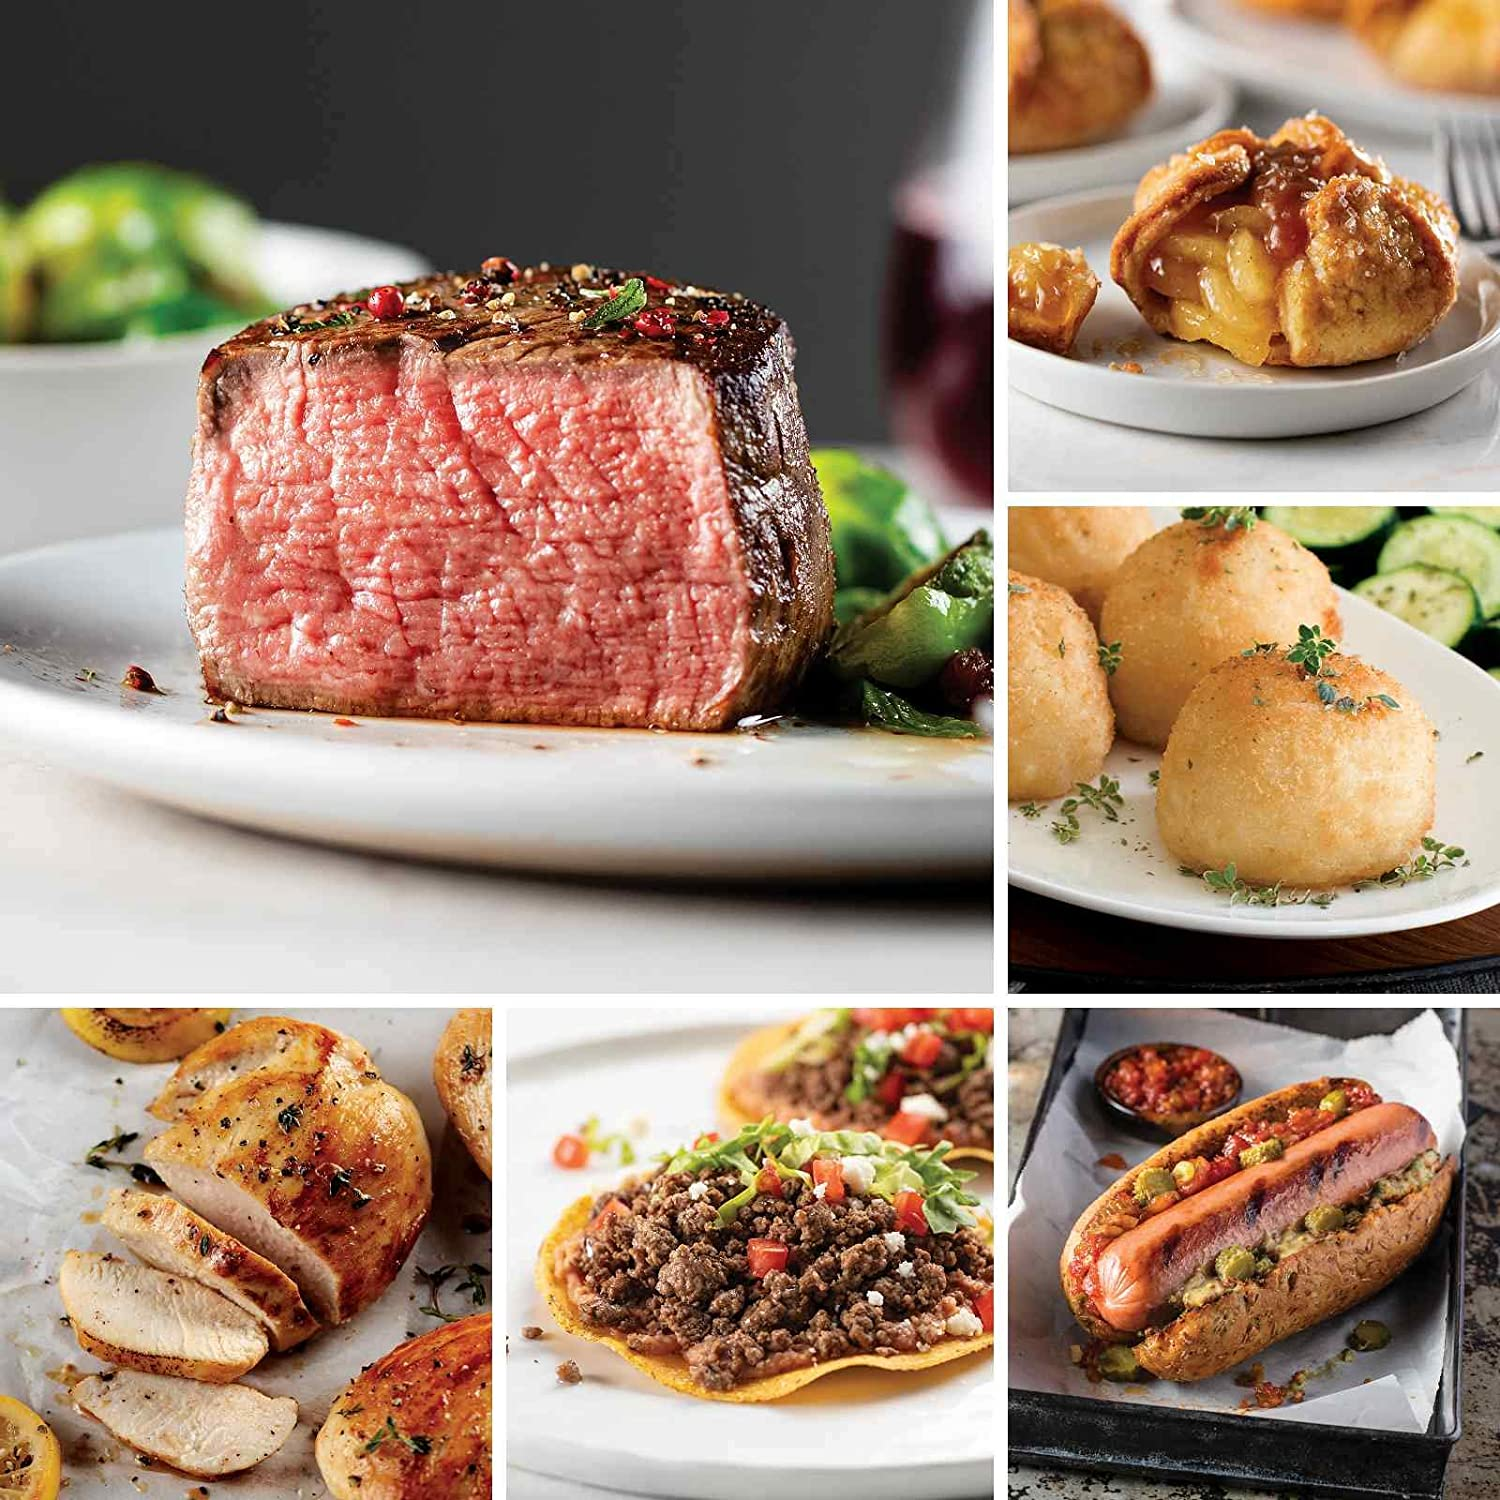 Filet For Father's Day from Omaha Steaks (Butcher's Cut Filet Mignons, Boneless Chicken Breasts, Premium Ground Beef, Gourmet Jumbo Franks, Potatoes au Gratin, Caramel Apple Tartlets, and more)